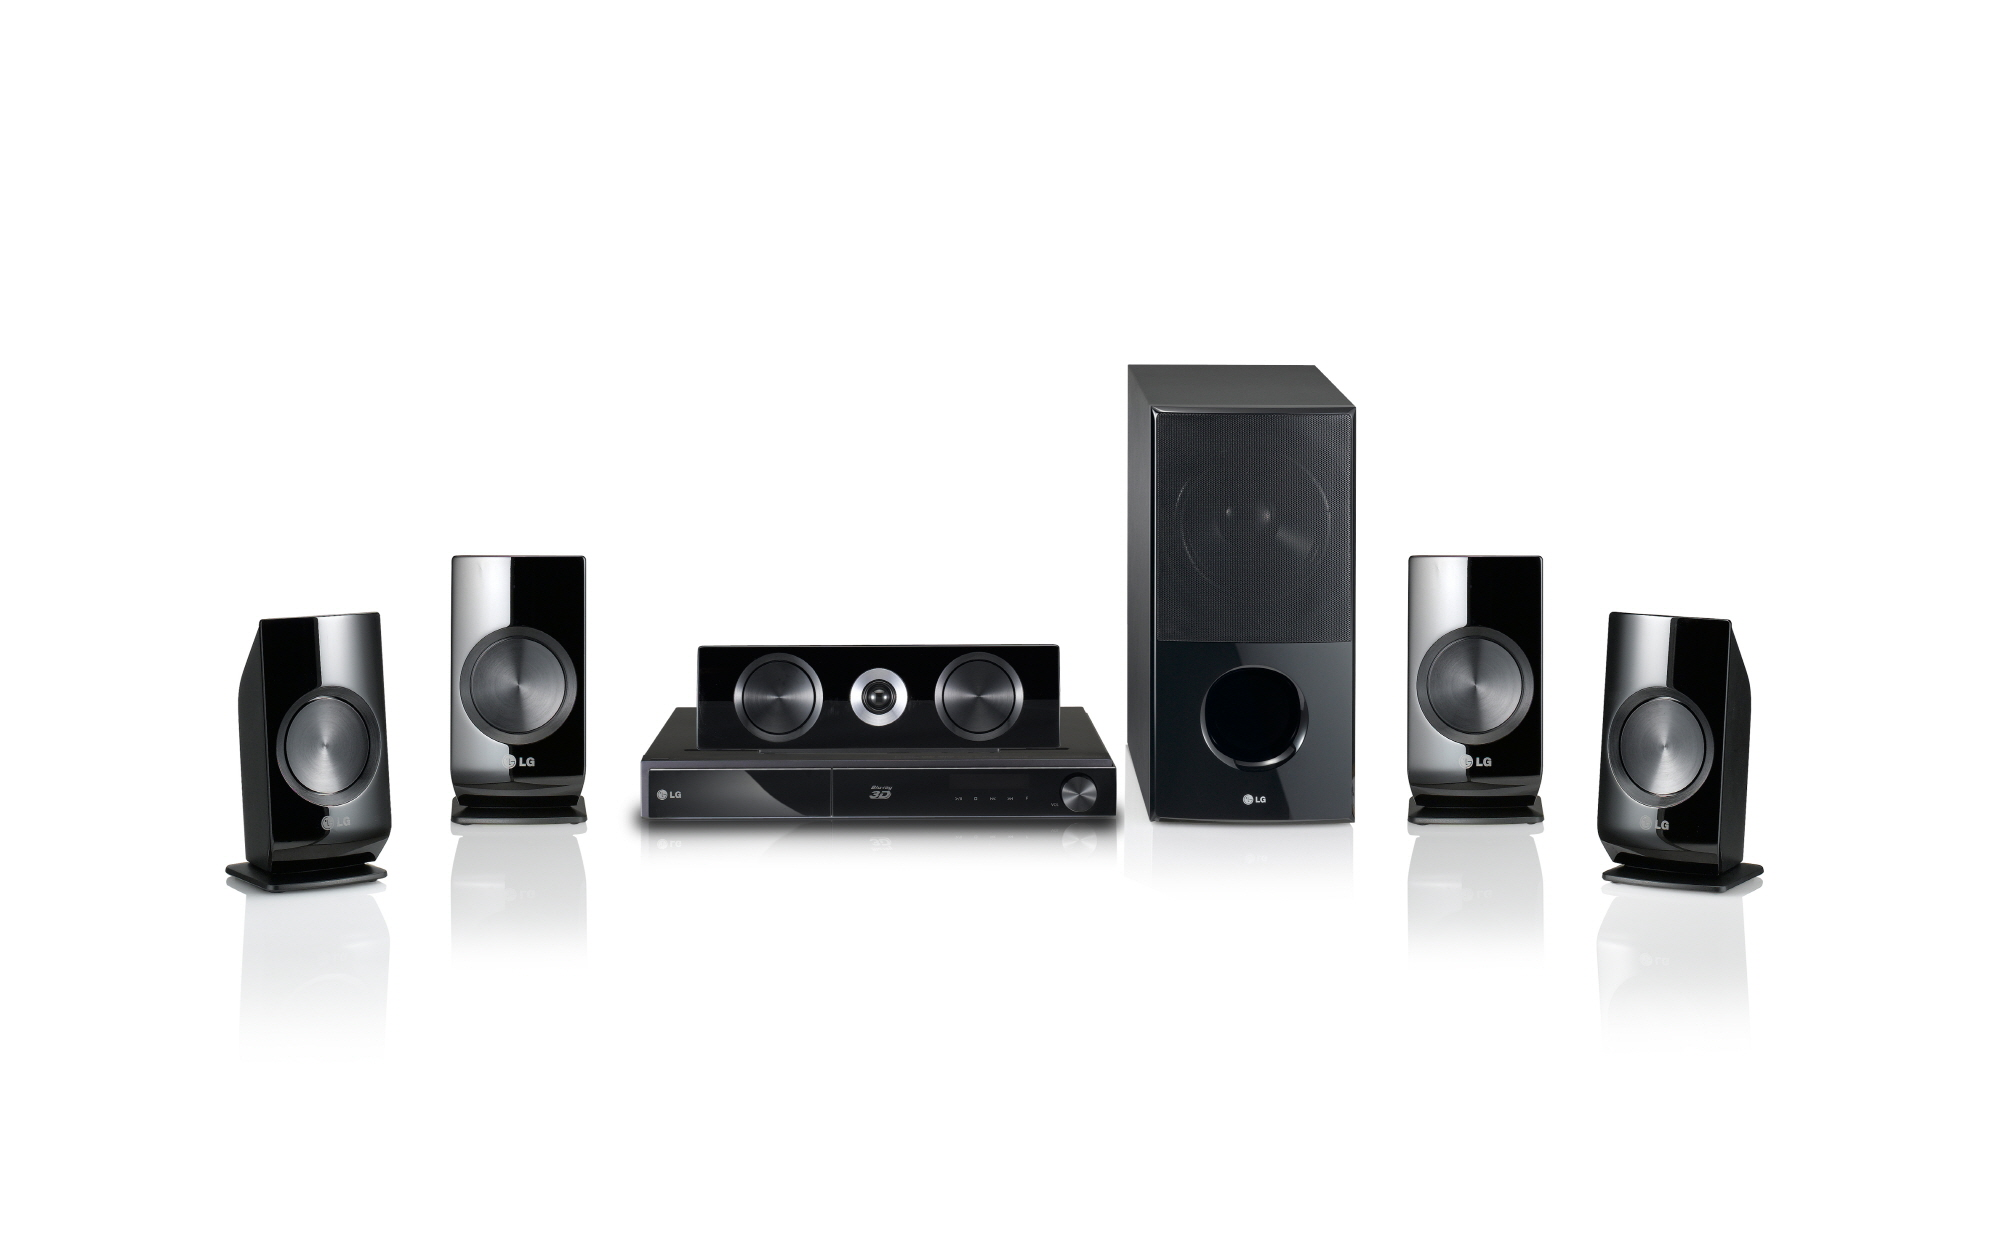 LG Full HD 1080p 3D-enabled Network Blu-ray Home Theater System model LHB336